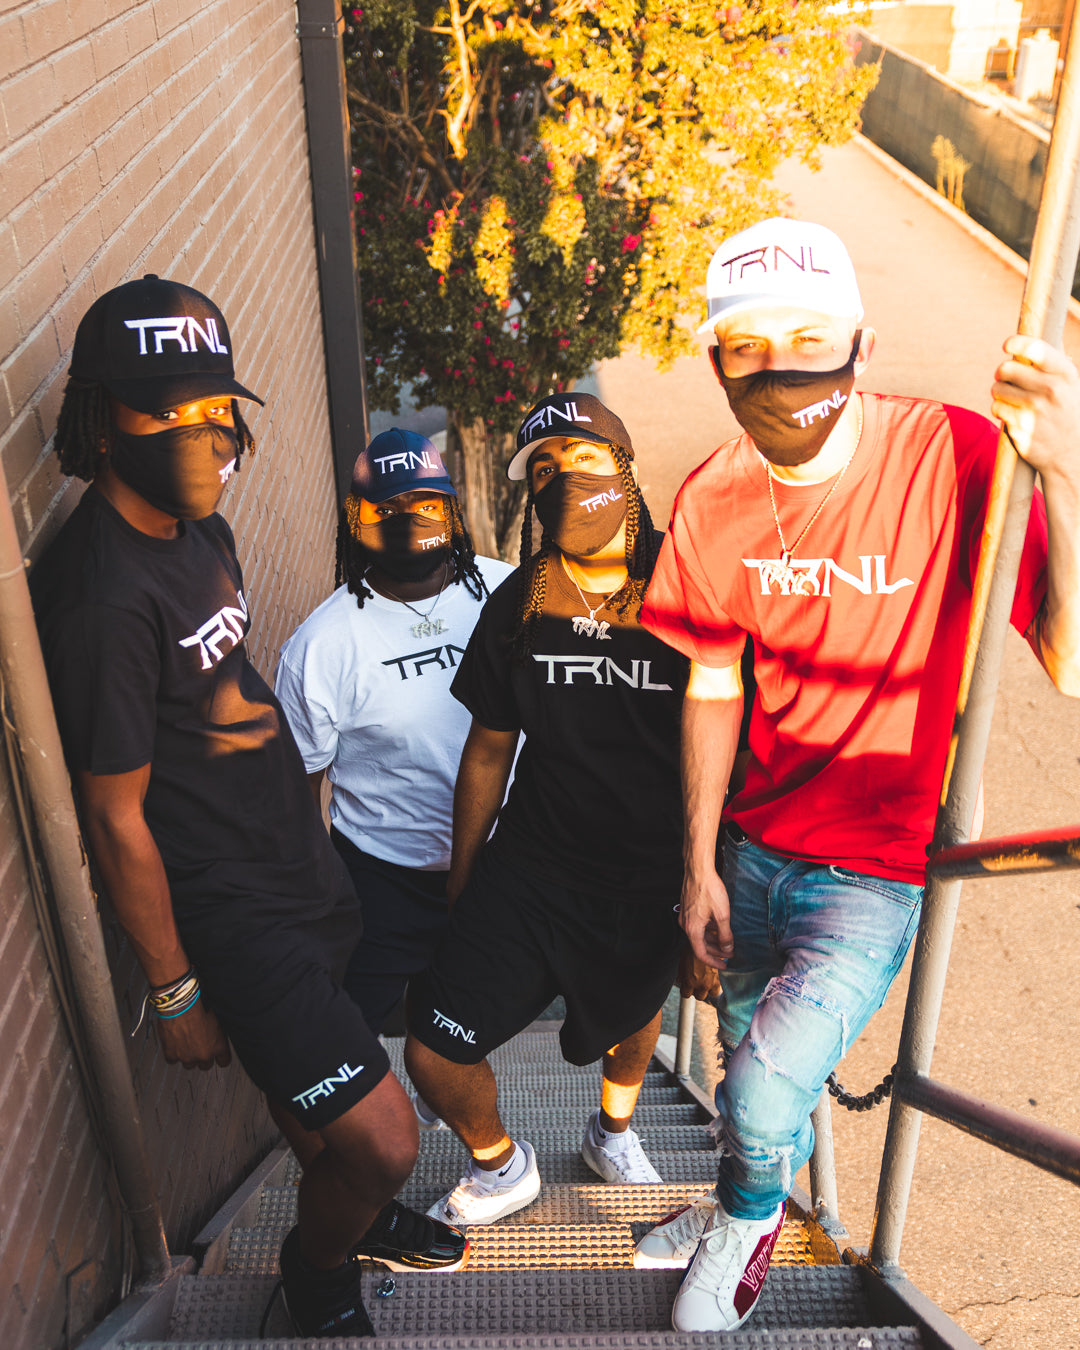 TRNL New Merch